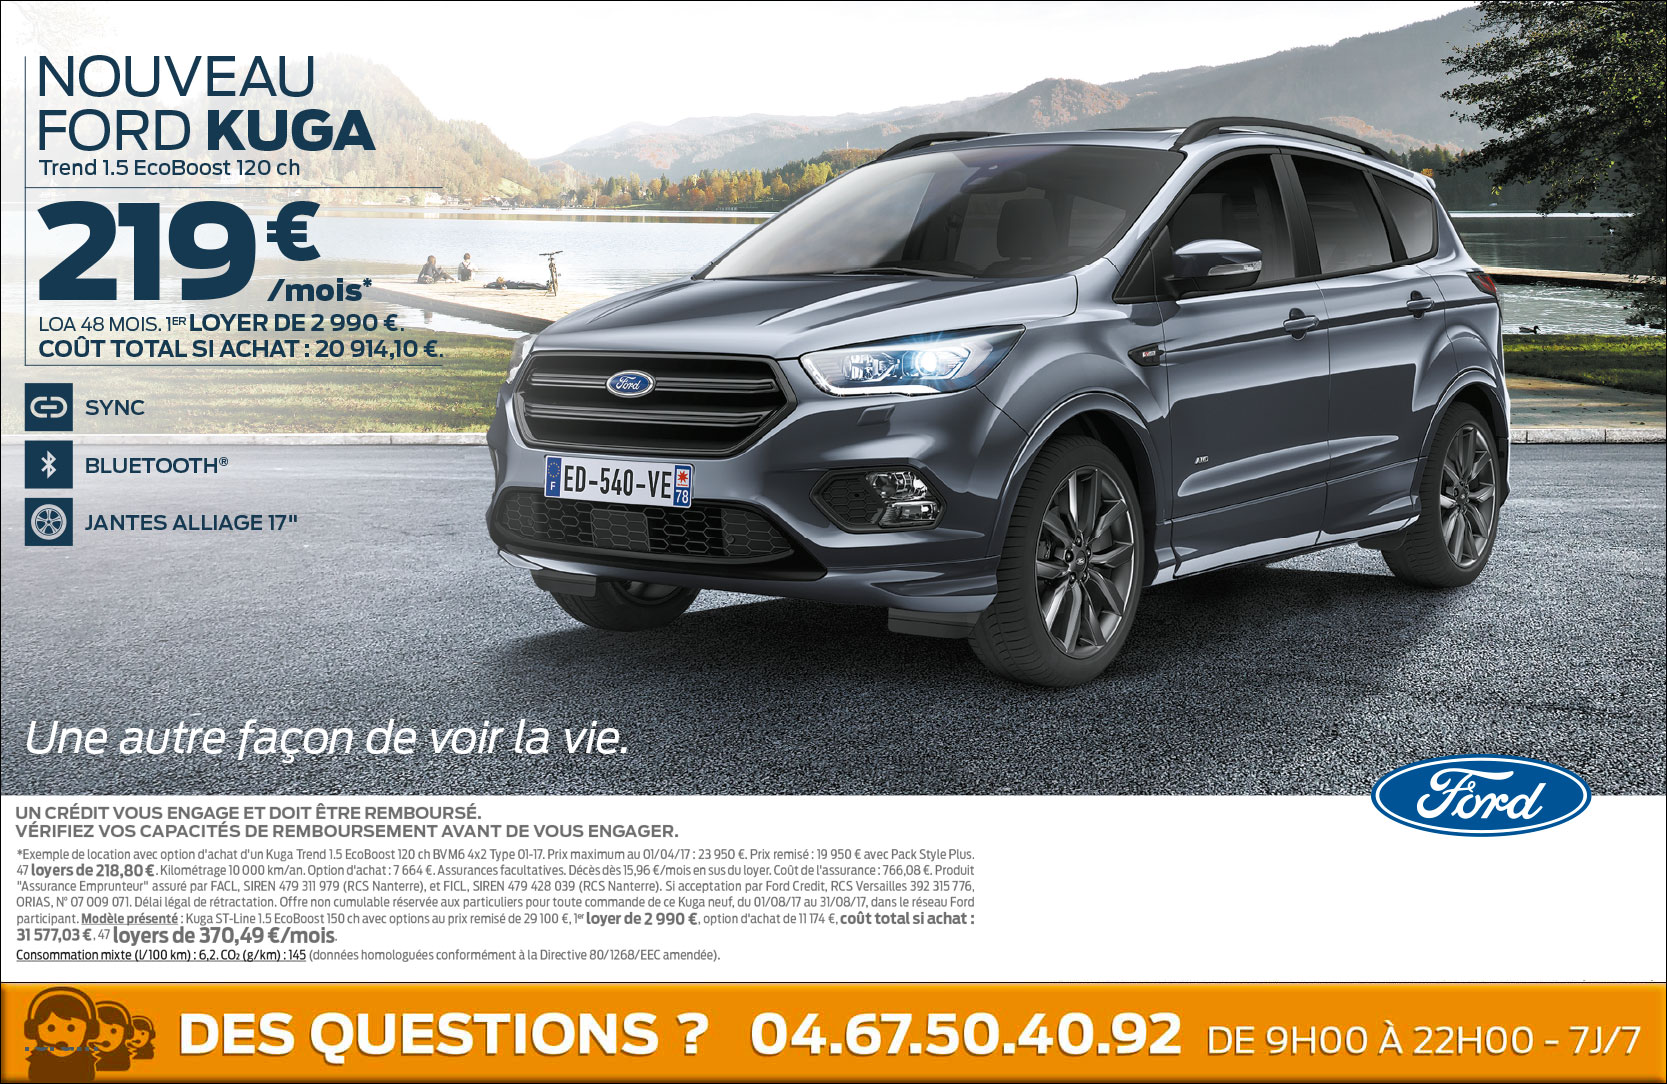 nouveau ford kuga 219 mois ford grim auto savab saval fordstore ford rodez. Black Bedroom Furniture Sets. Home Design Ideas